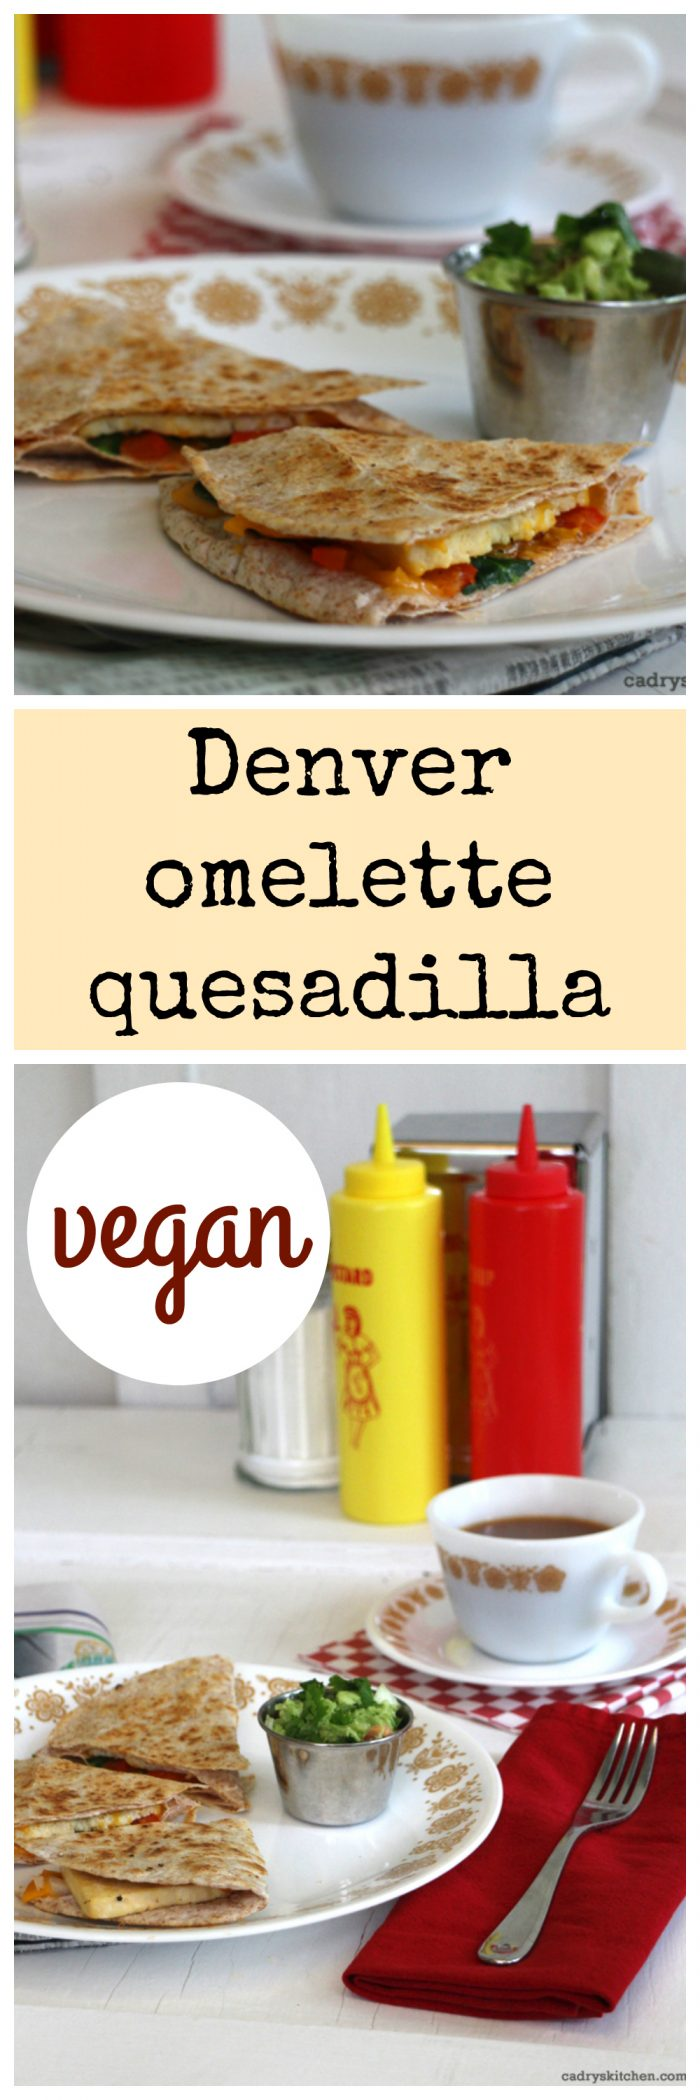 Denver omelette quesadilla: All of the flavors of a Denver omelette in a vegan quesadilla | cadryskitchen.com